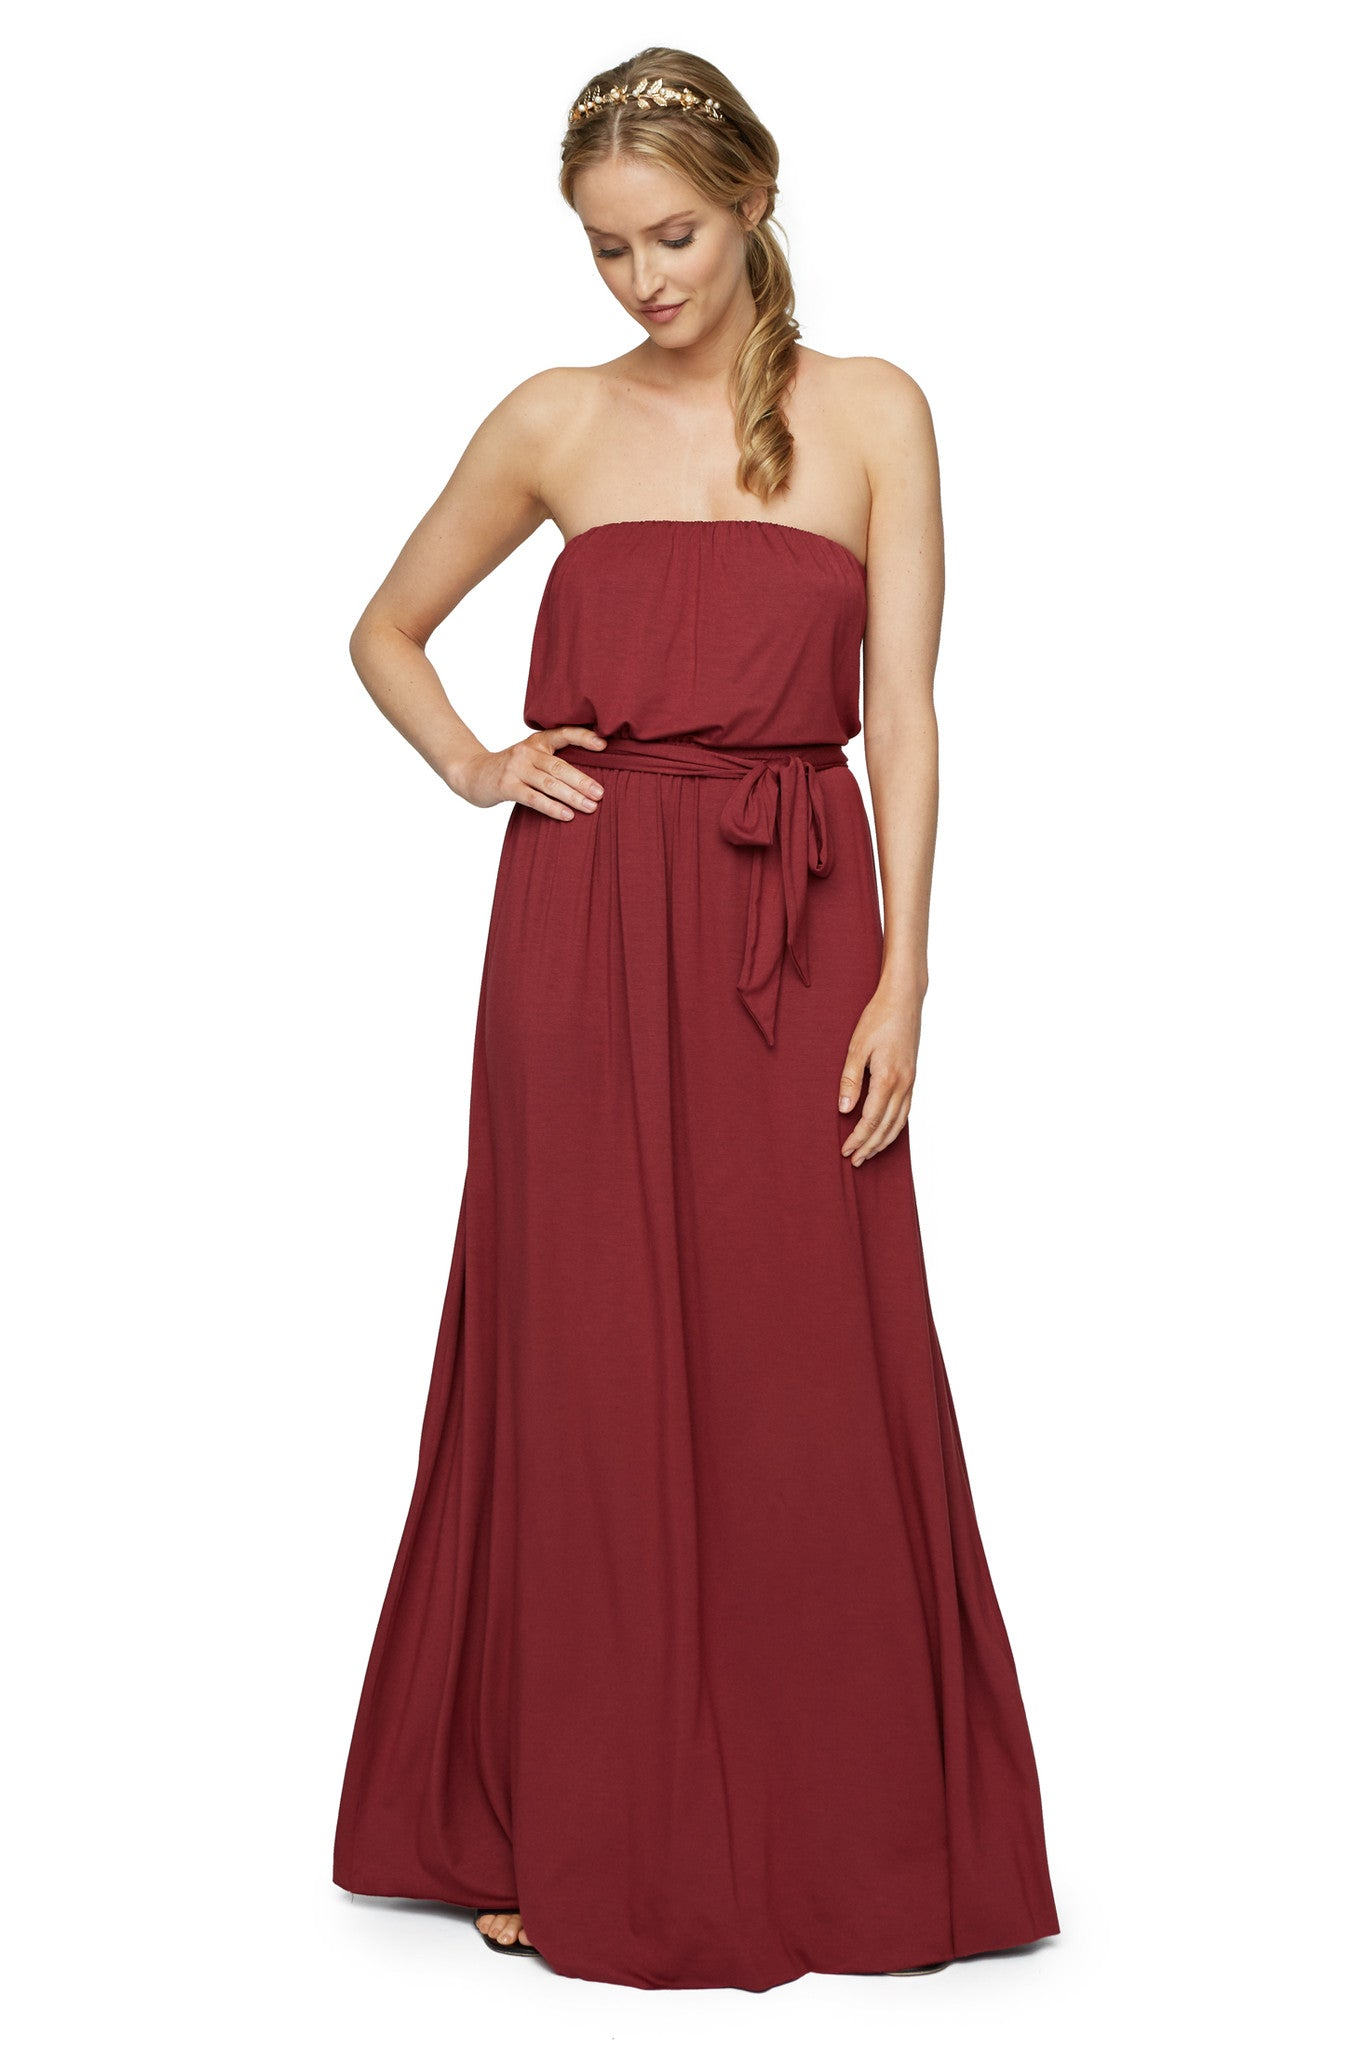 Tery Dress - Heirloom